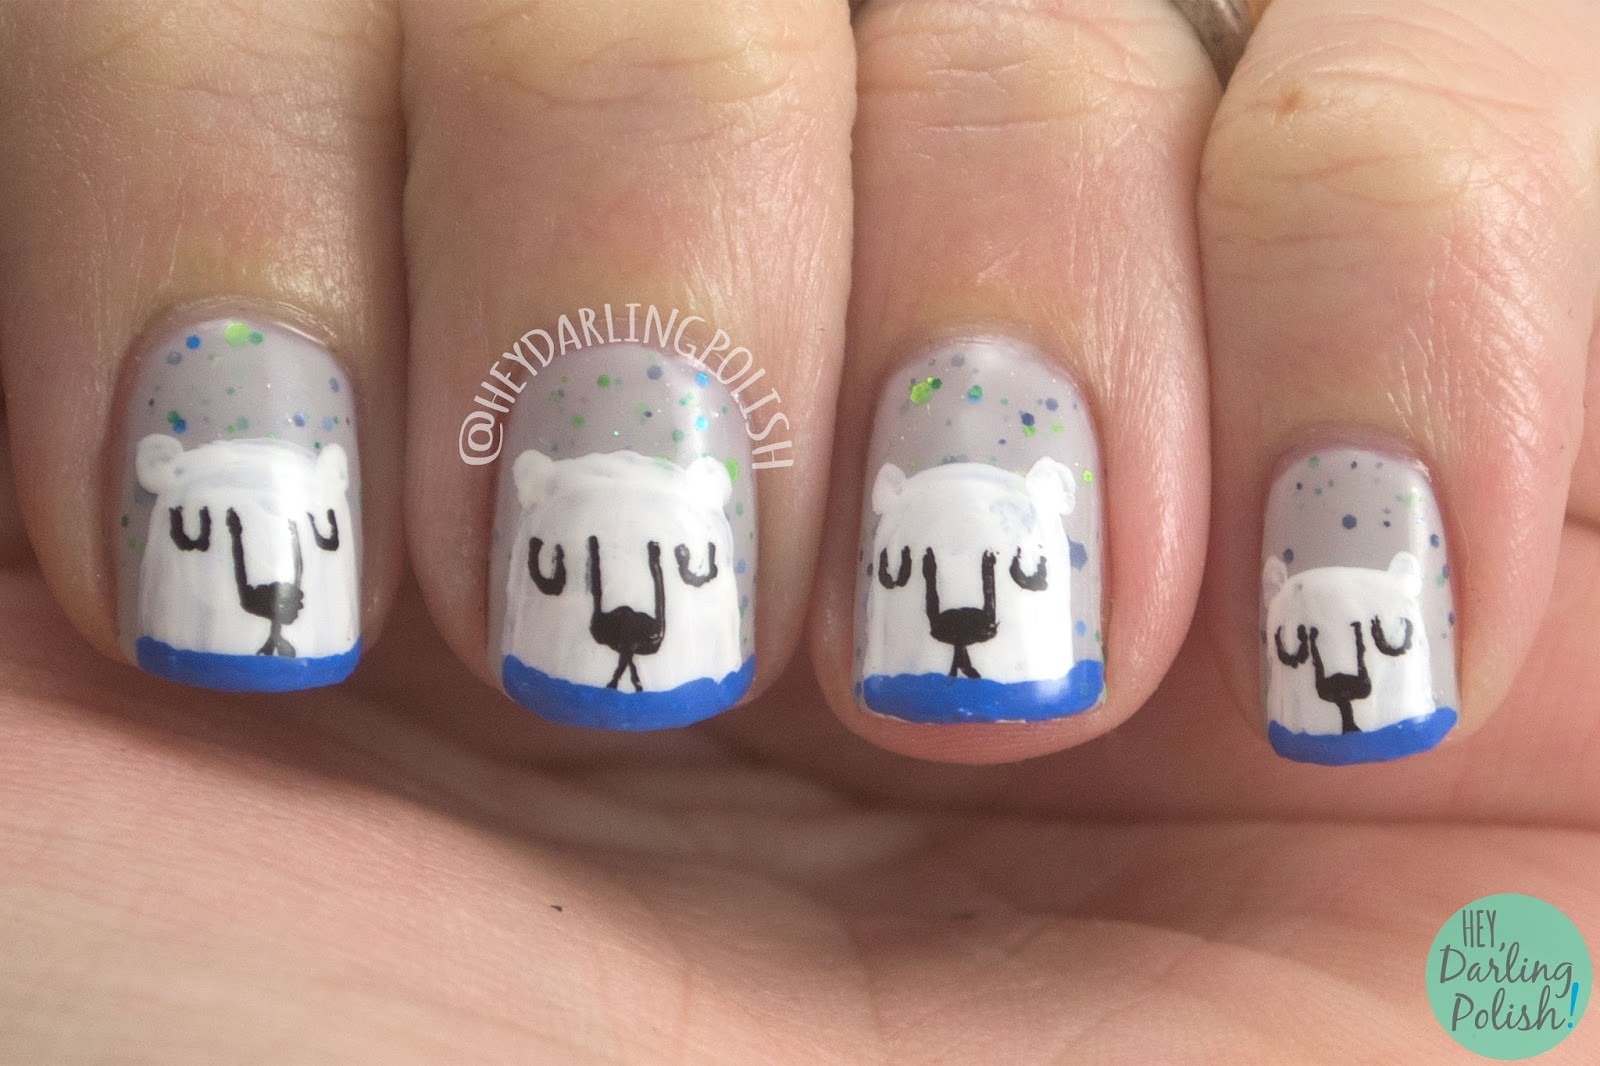 let's sleigh together, grey, polar bear, animal, winter, nail art, nails, nail polish, indie, indie nail polish, indie polish, kbshimmer, hey darling polish, winter collection 2014, holiday